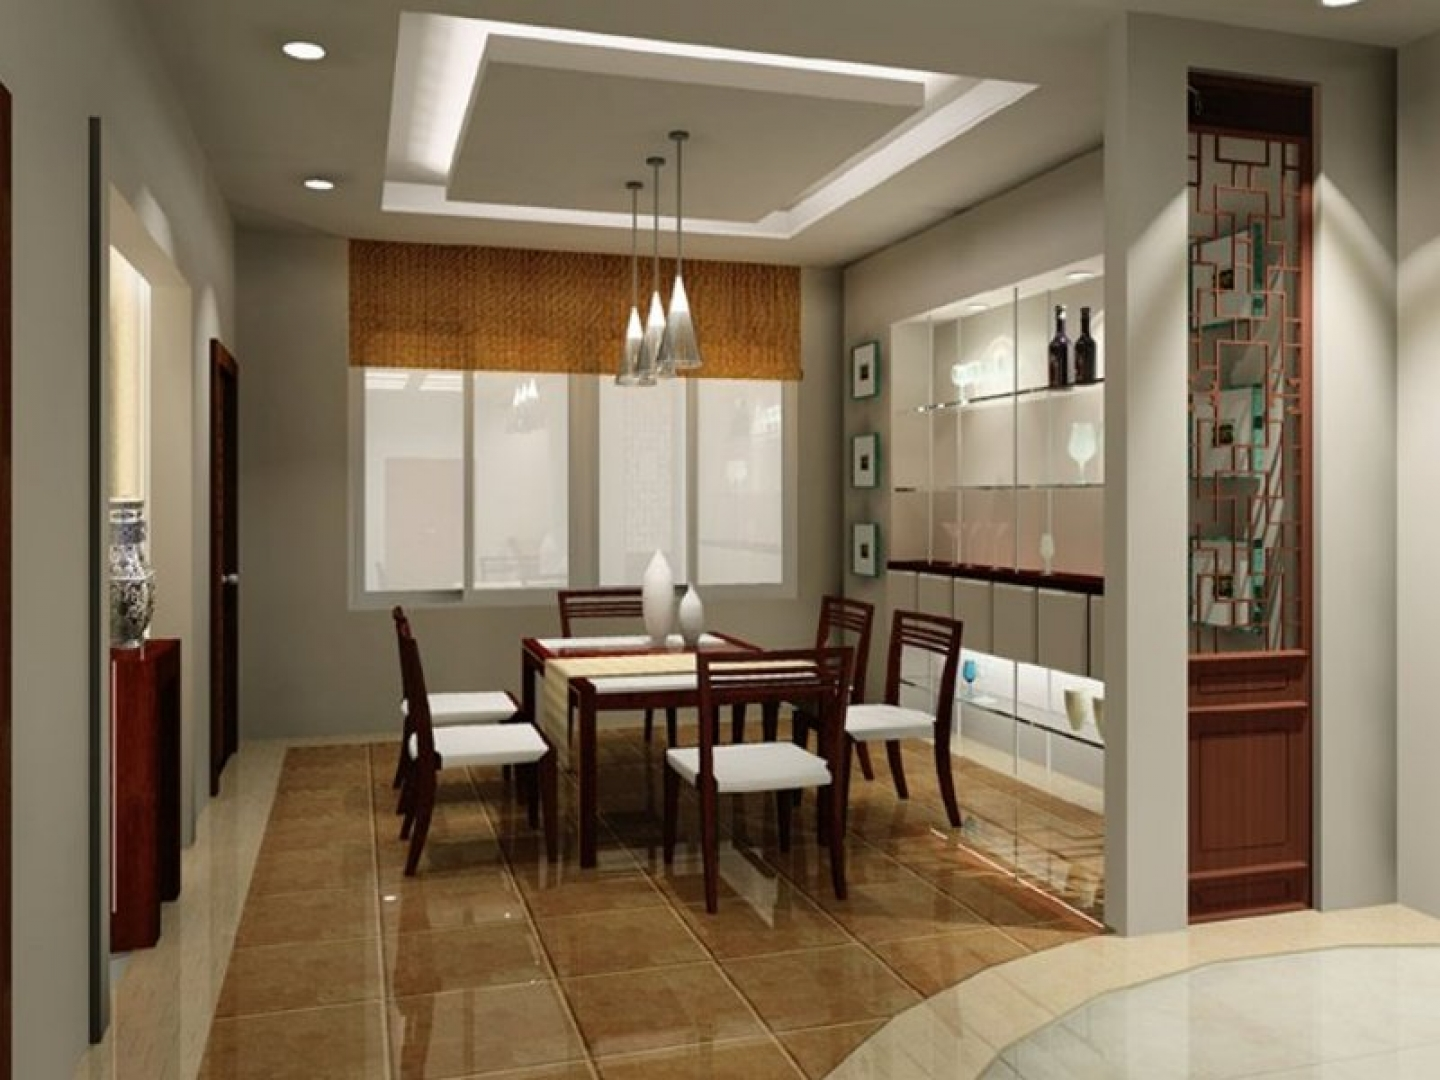 Interior Decorating Ideas For Small Dining Rooms Small Room Decorating Ideas